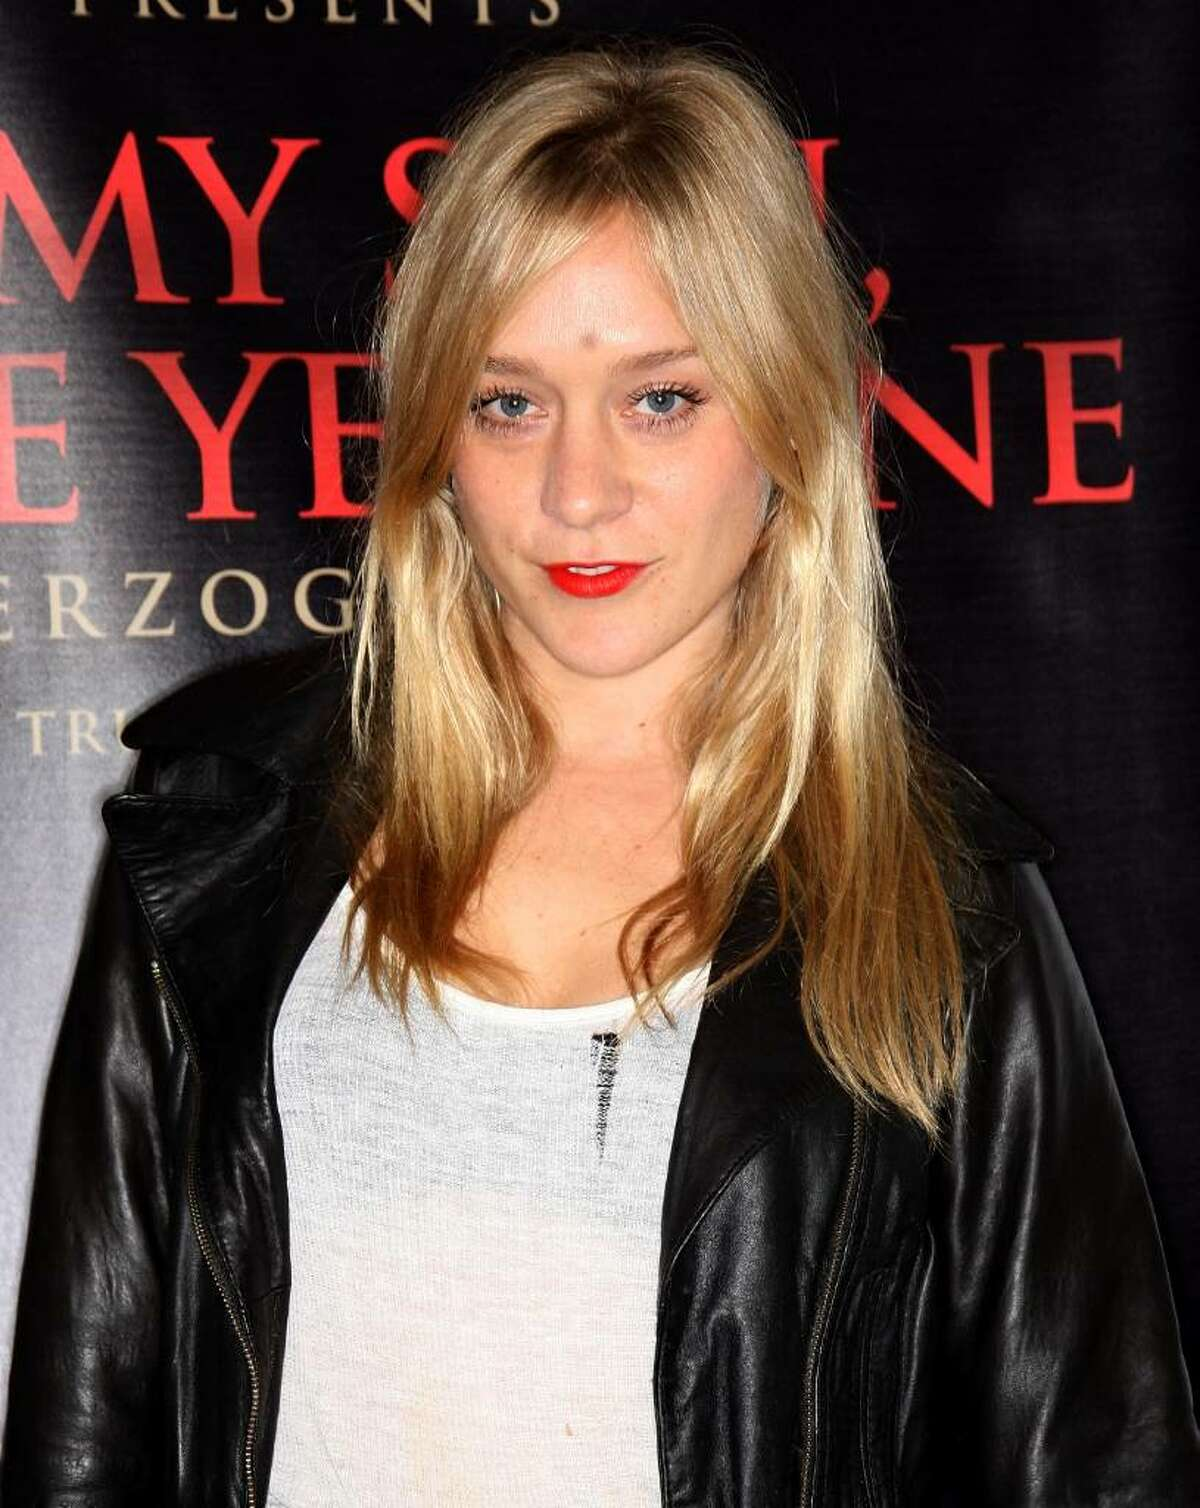 LOS ANGELES, CA - DECEMBER 19: Actress Chloe Sevigny attends the ''My Son, My Son What Have Ye Done'' film premiere at The Downtown Independent theater on December 19, 2009 in Los Angeles, California. (Photo by Frederick M. Brown/Getty Images) *** Local Caption *** Chloe Sevigny